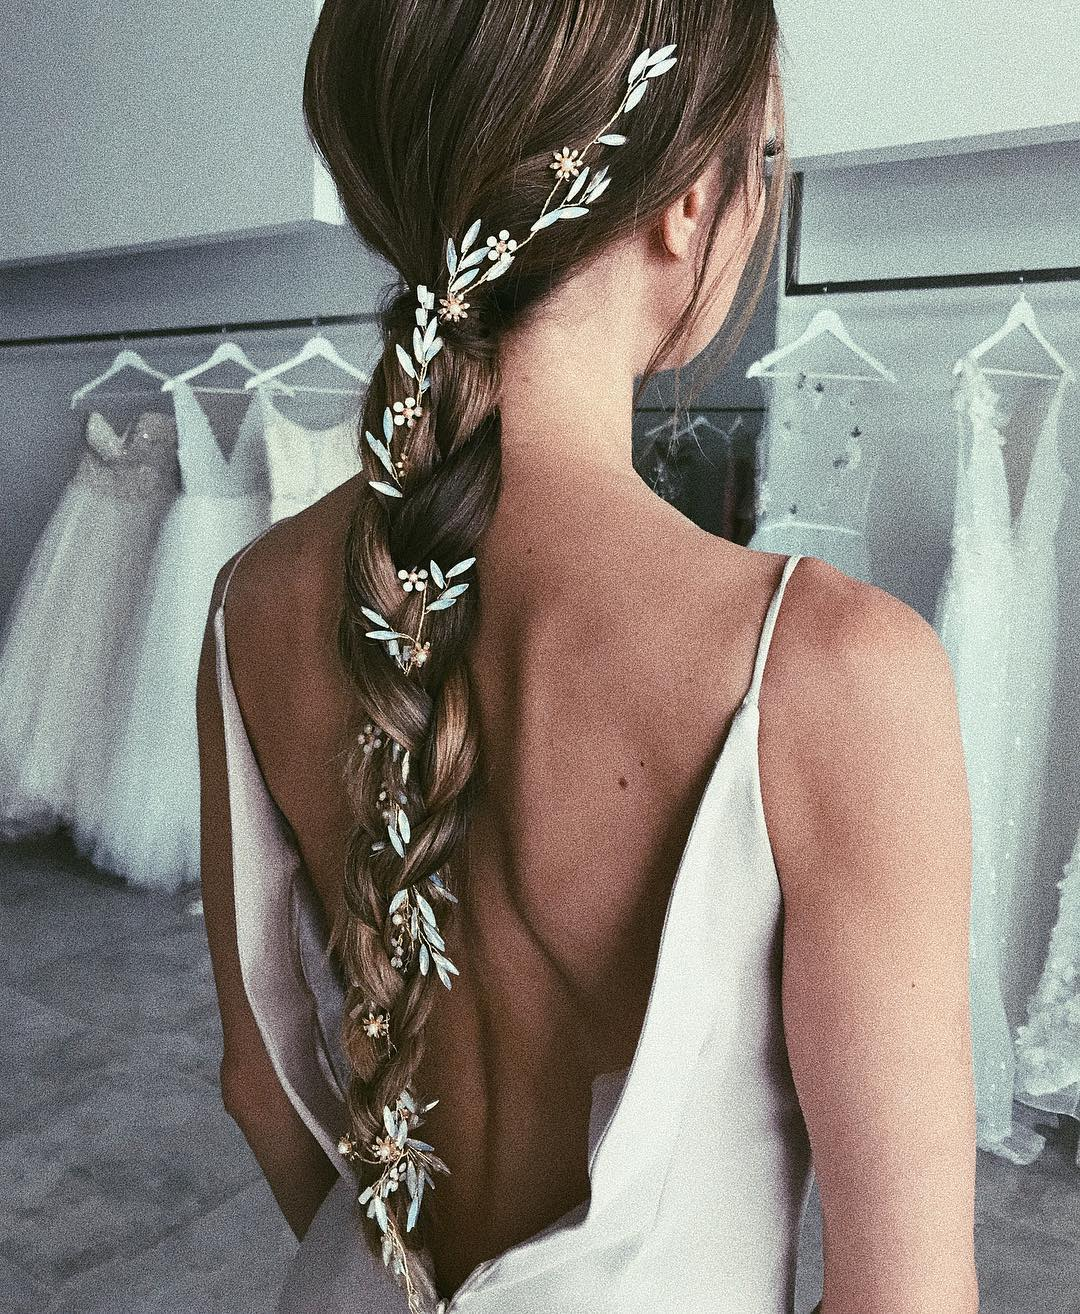 Wedding hair ideas: Shot of woman with dark brown long braided plait with flowers in it, wearing a wedding dress in bridal showroom